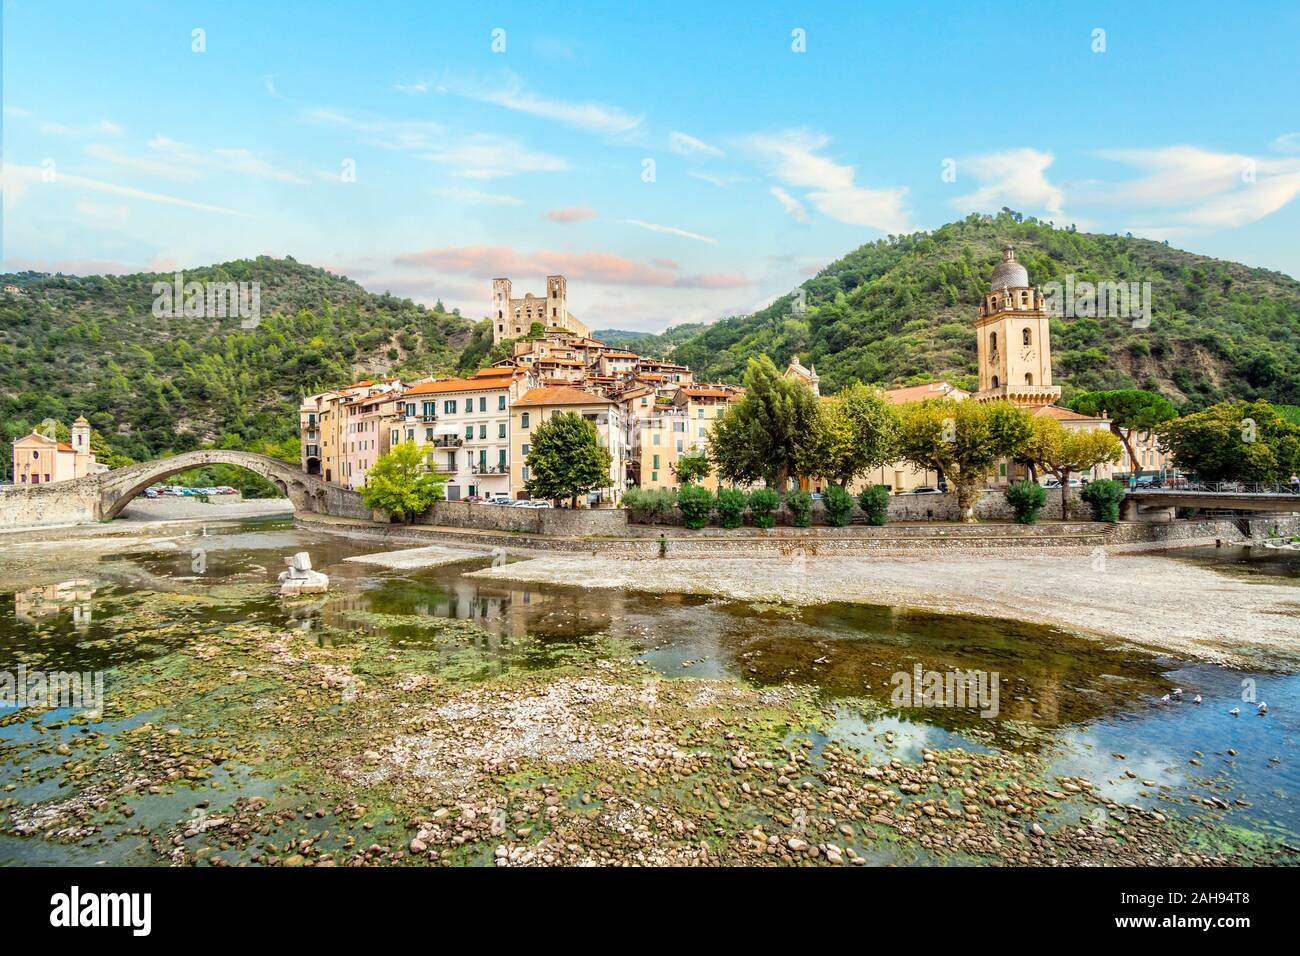 The medieval village of Dolceacqua Italy, showing the San Filippo Church, hilltop Castello castle, arched Monet bridge, and ancient cathedral. Stock Photo